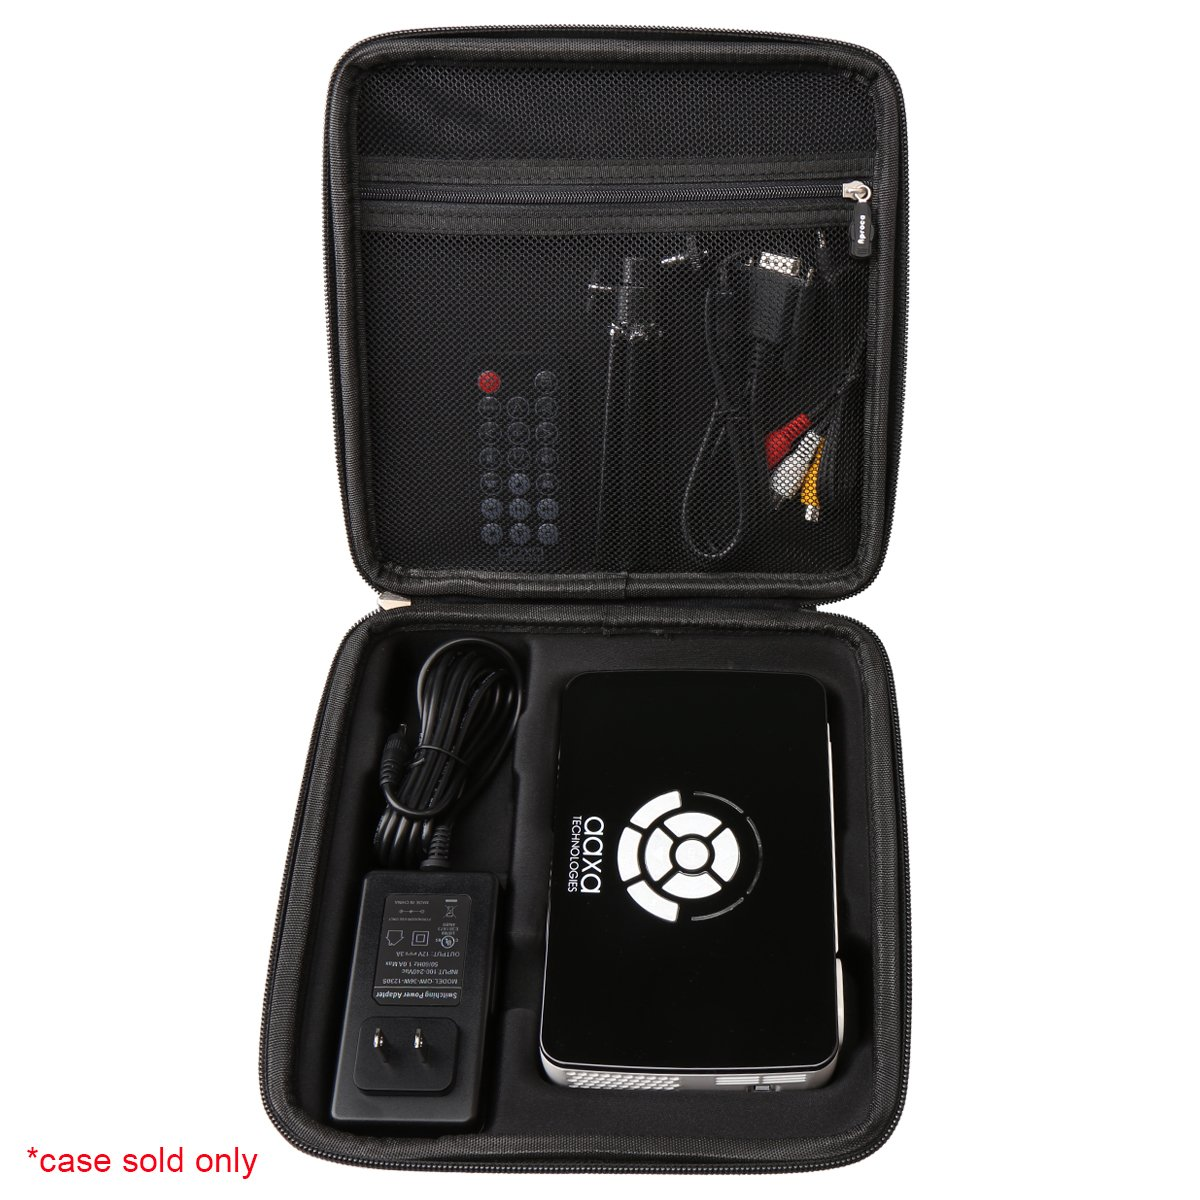 Hard Carrying Travel Case for AAXA Technologies P300 Pico Projector by Aproca